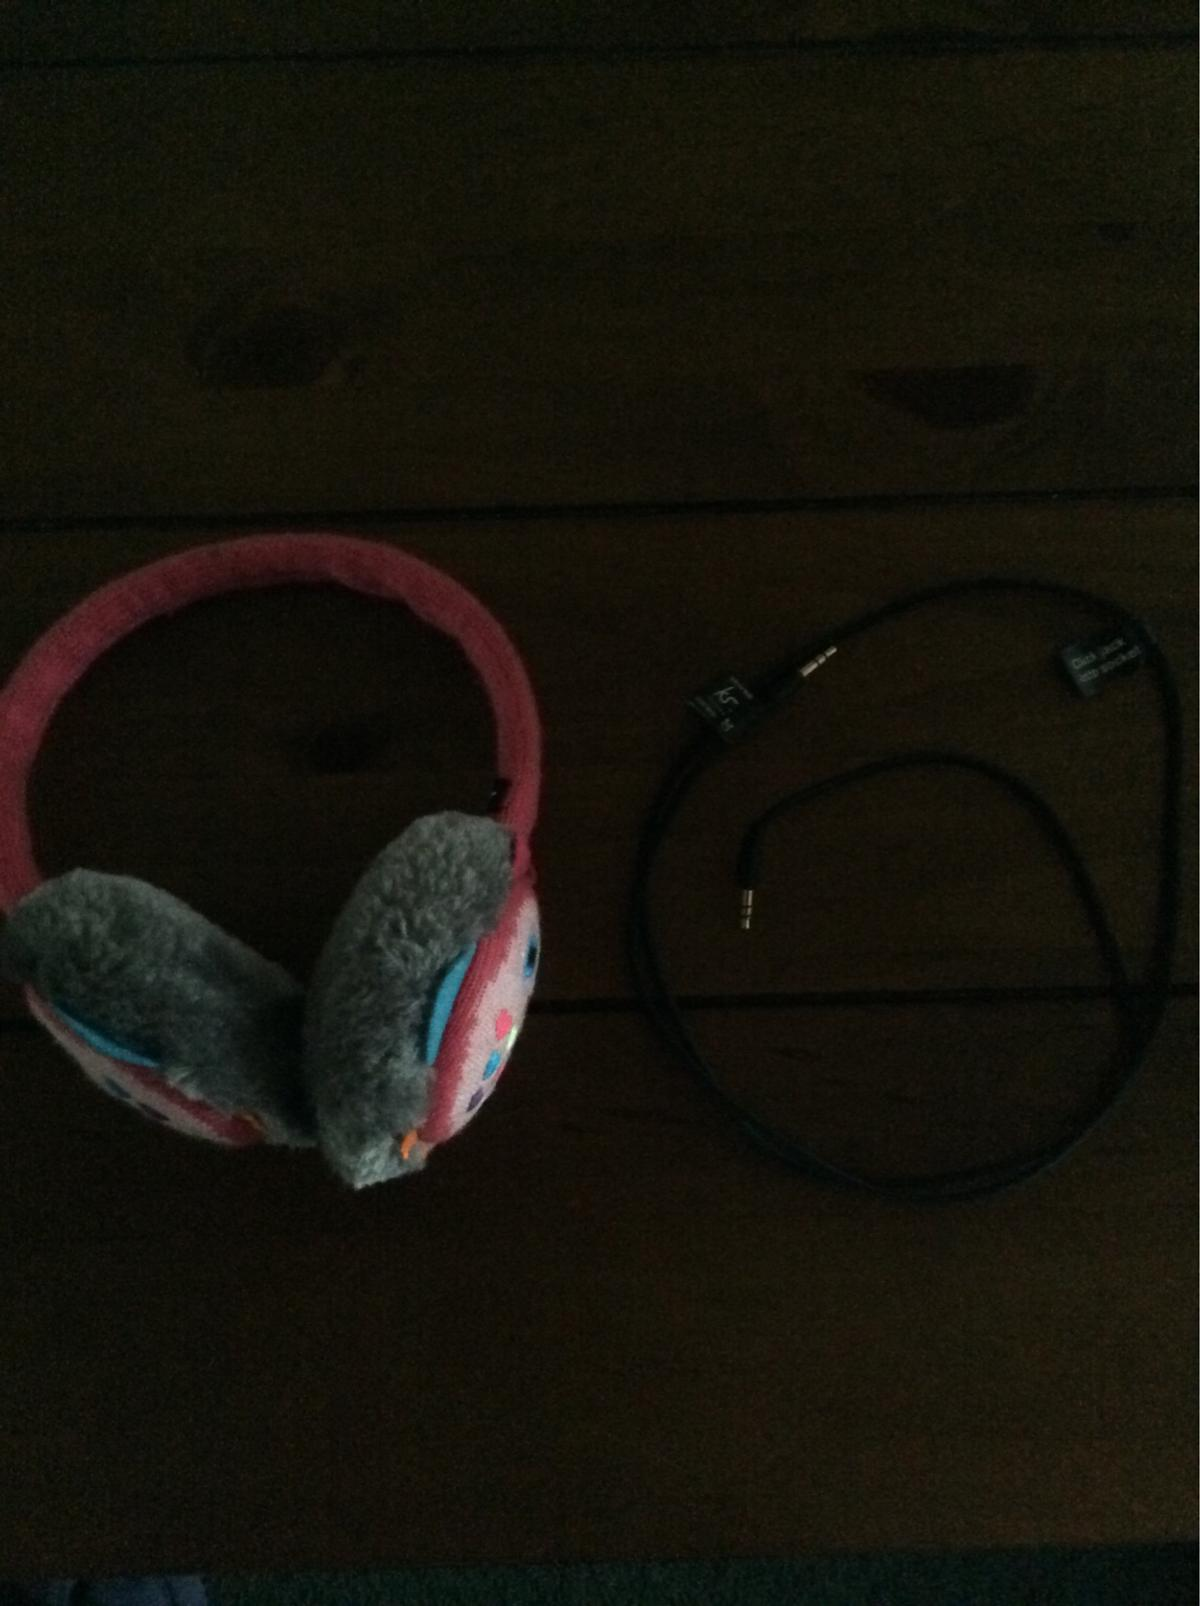 With removable cable, Good condition.